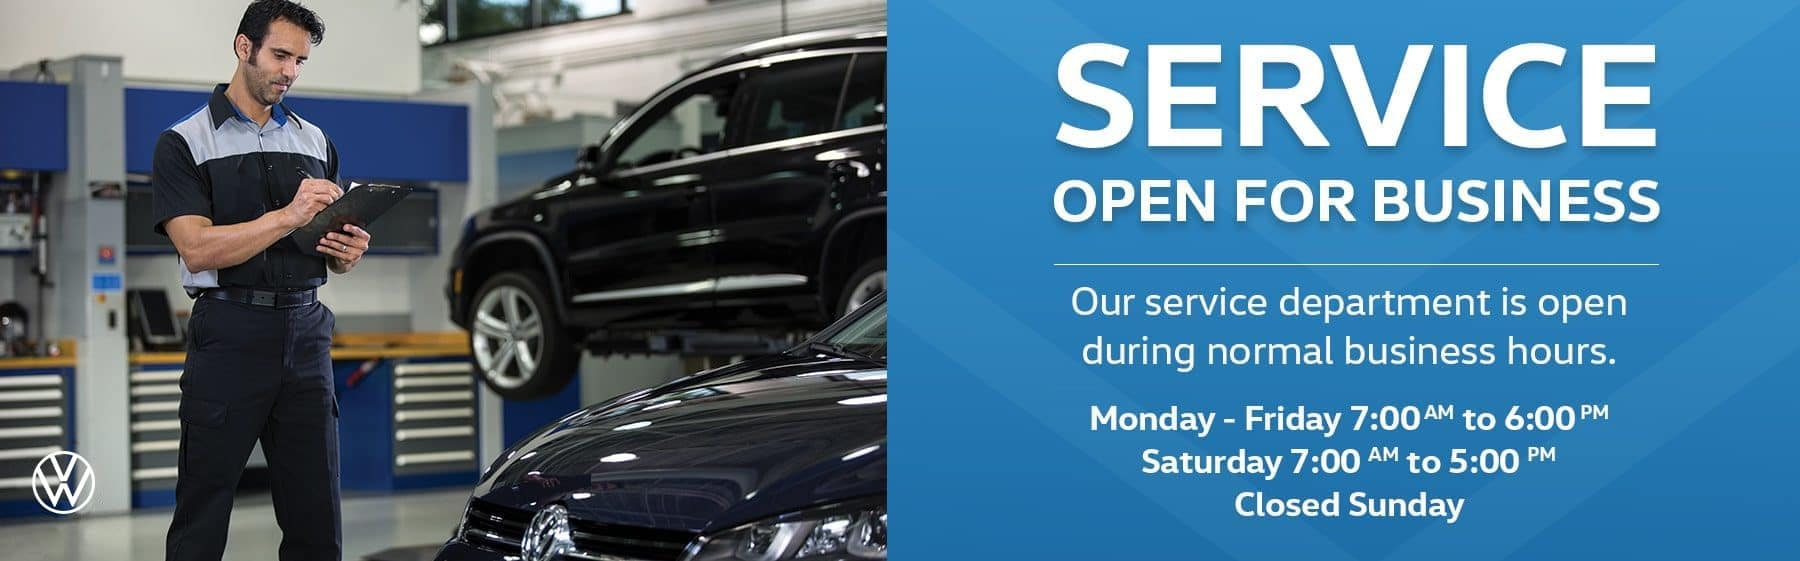 Service open for business. Our service department is open during normal business hours. Monday - Friday, 7:00AM to 5:00PM. Saturday 7:00AM to 5:00PM. Closed Sunday.